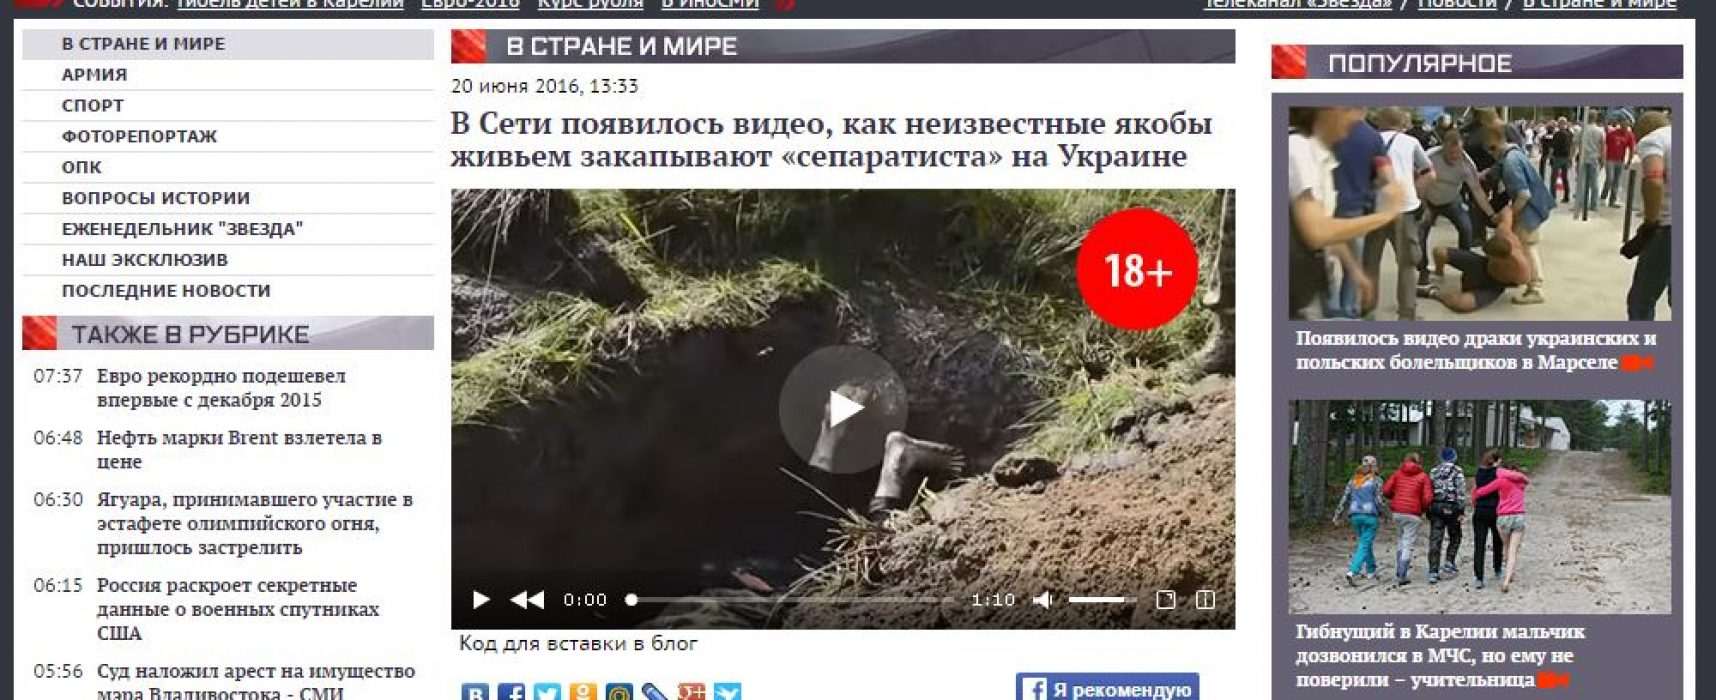 Fake: Separatist buried alive in Ukraine